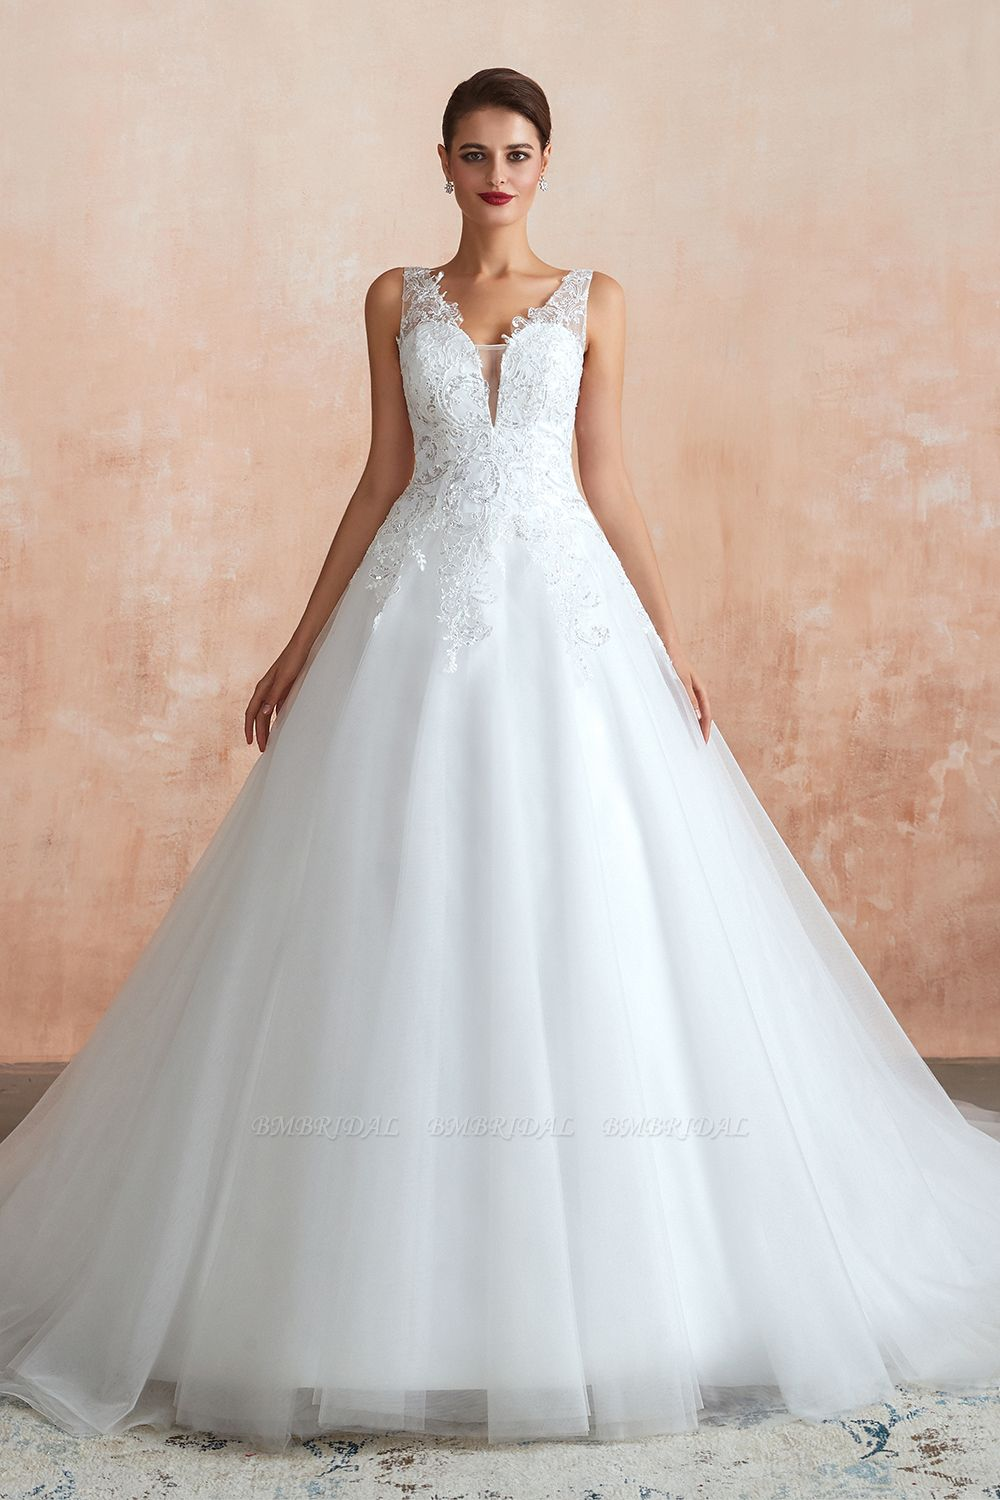 Fantastic Tulle Appliques Sleeveless White Wedding Dresses Online